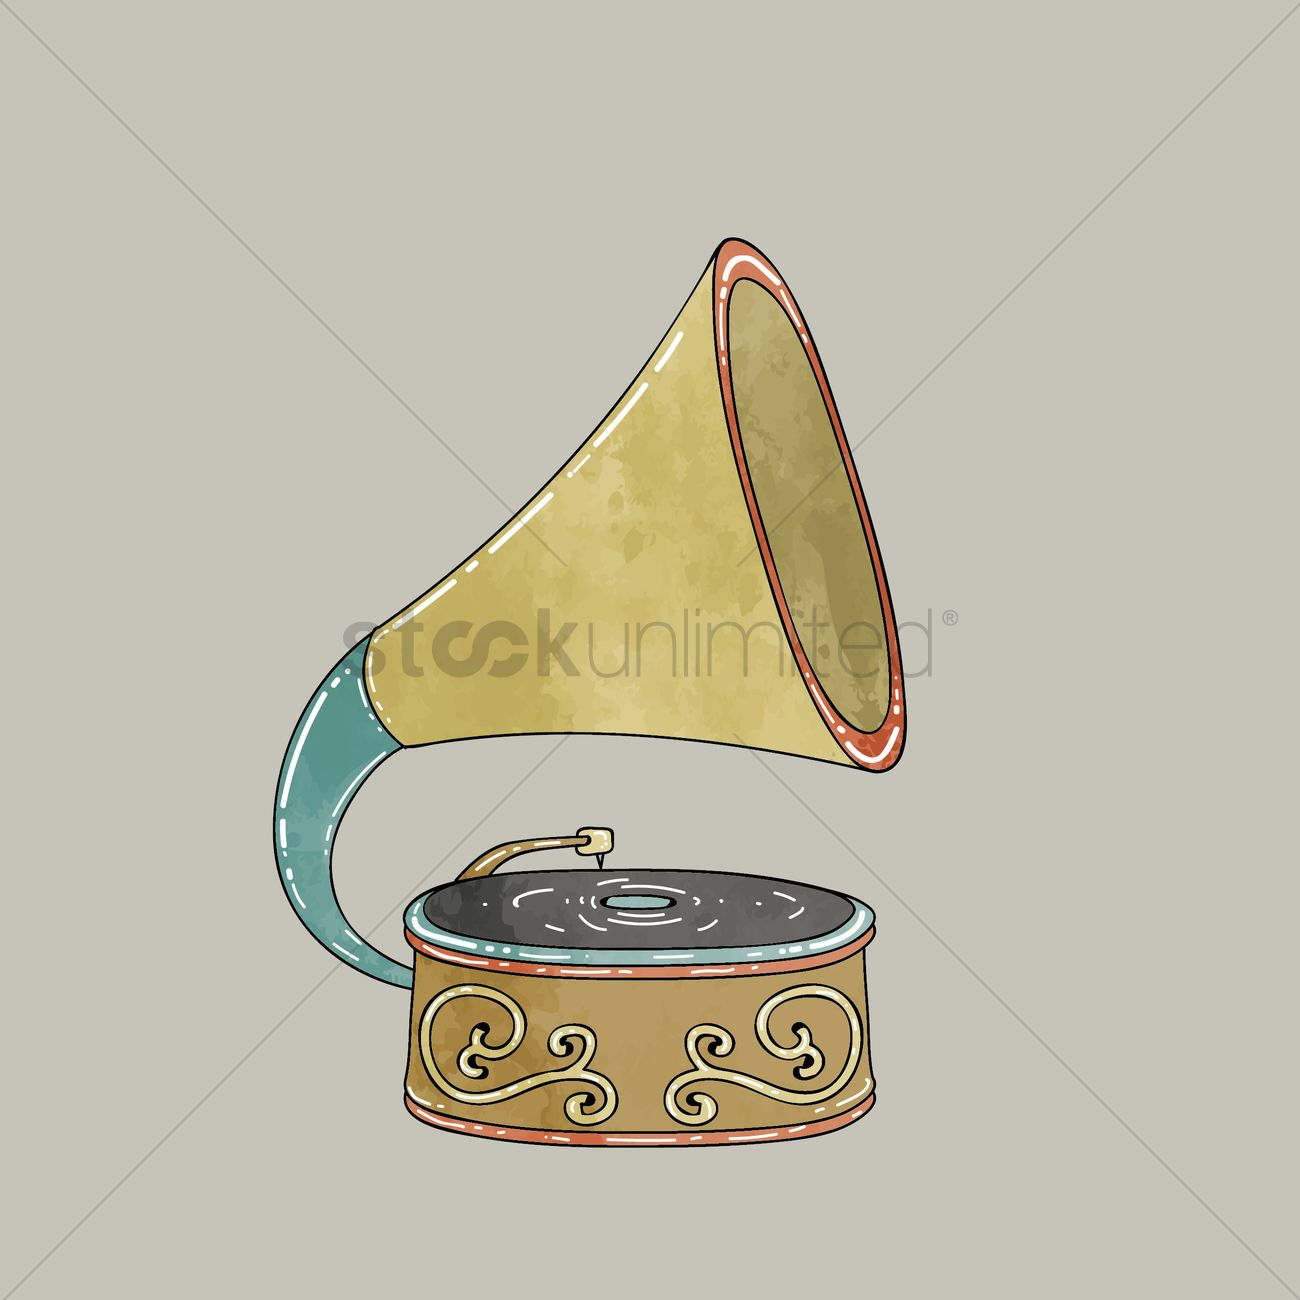 free old gramophone vector image 1310464 stockunlimited stockunlimited